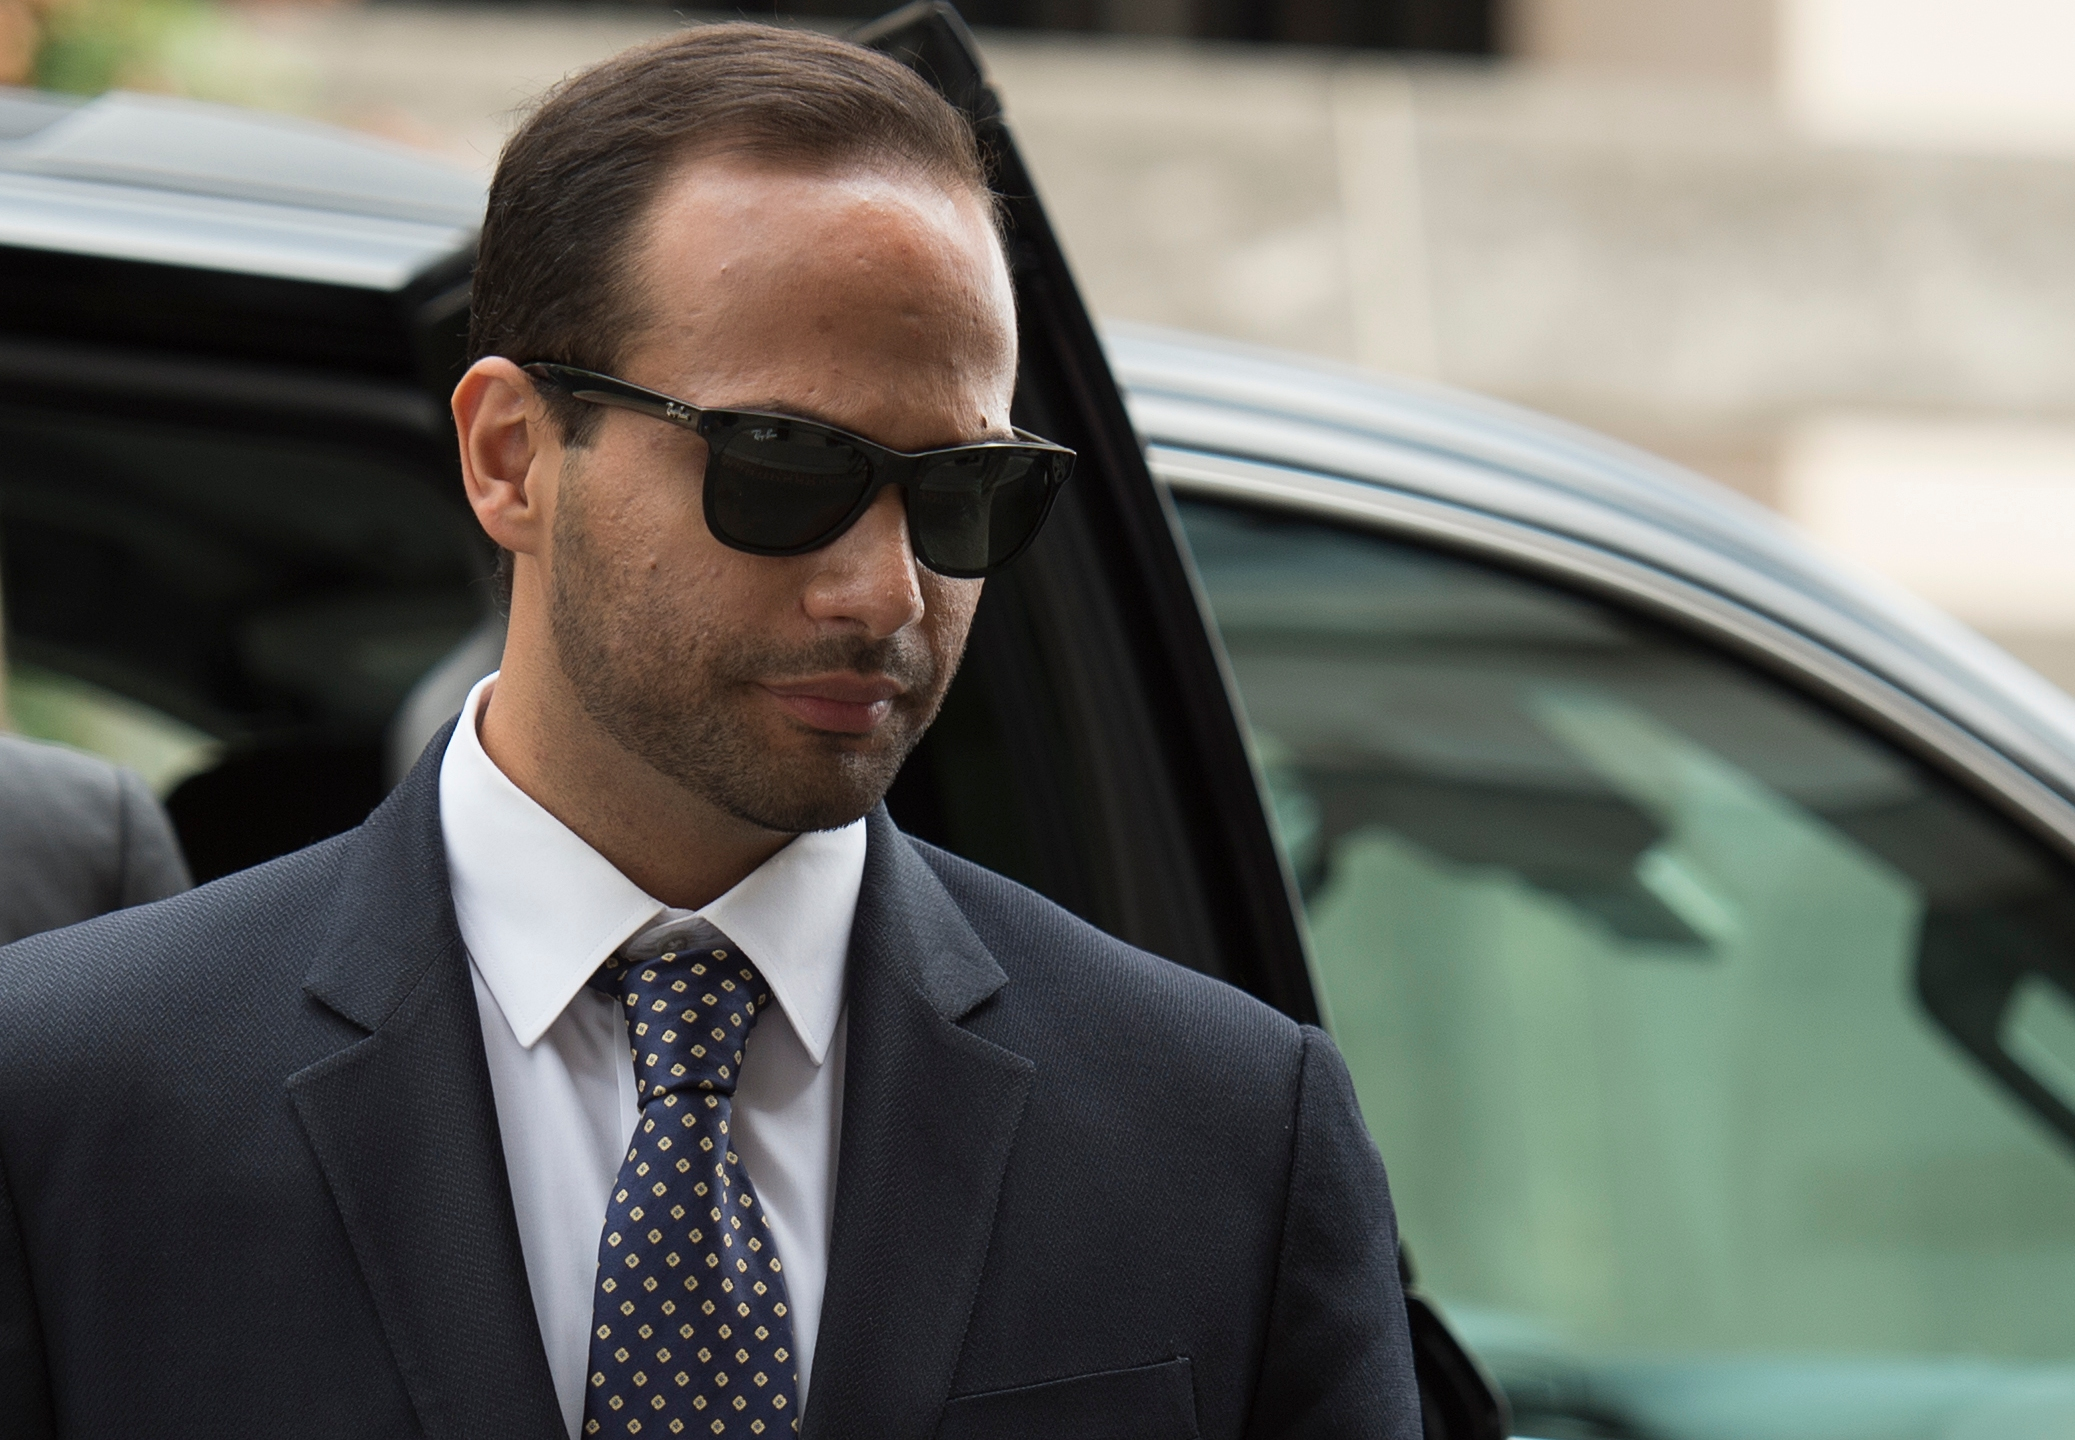 George Papadopoulos arrives at US District Court for his sentencing in Washington, D.C. on Sept. 7, 2018. (Credit: Andrew Caballero Reynolds/AFP/Getty Images)